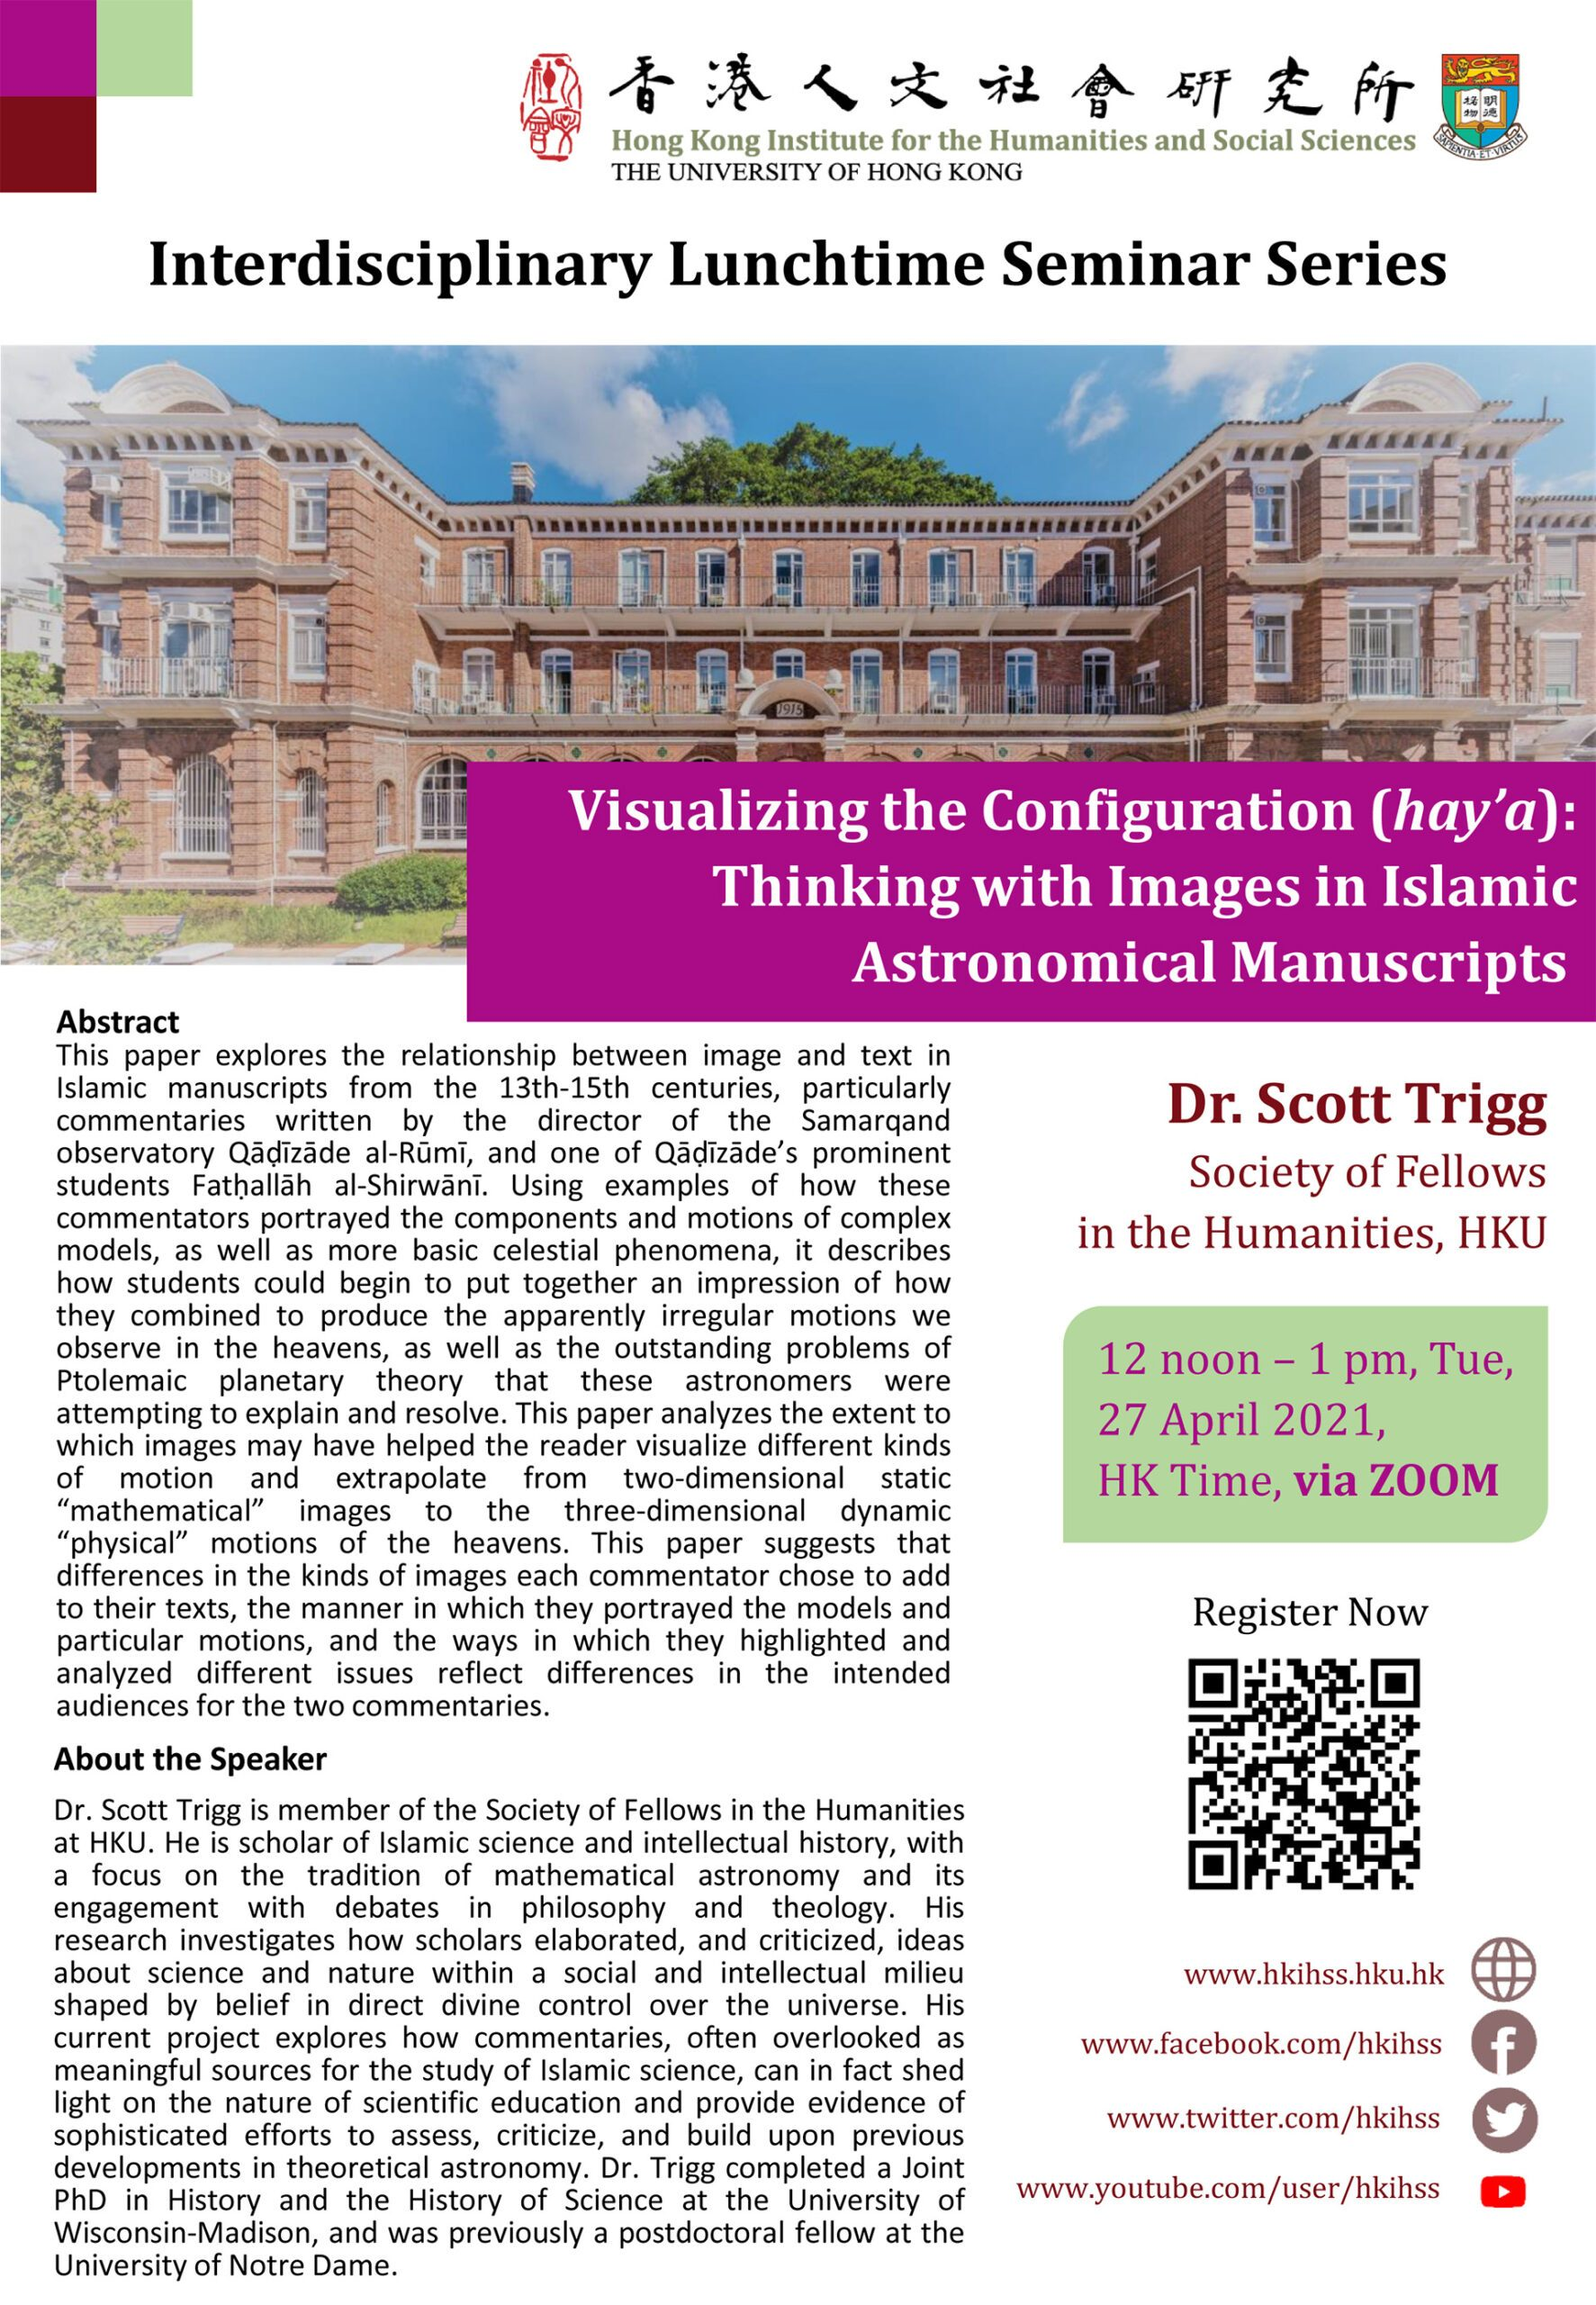 """Interdisciplinary Lunchtime Seminar on """"Visualizing the Configuration (hay'a): Thinking with Images in Islamic Astronomical Manuscripts"""" by Dr. Scott Trigg (April 27, 2021)"""